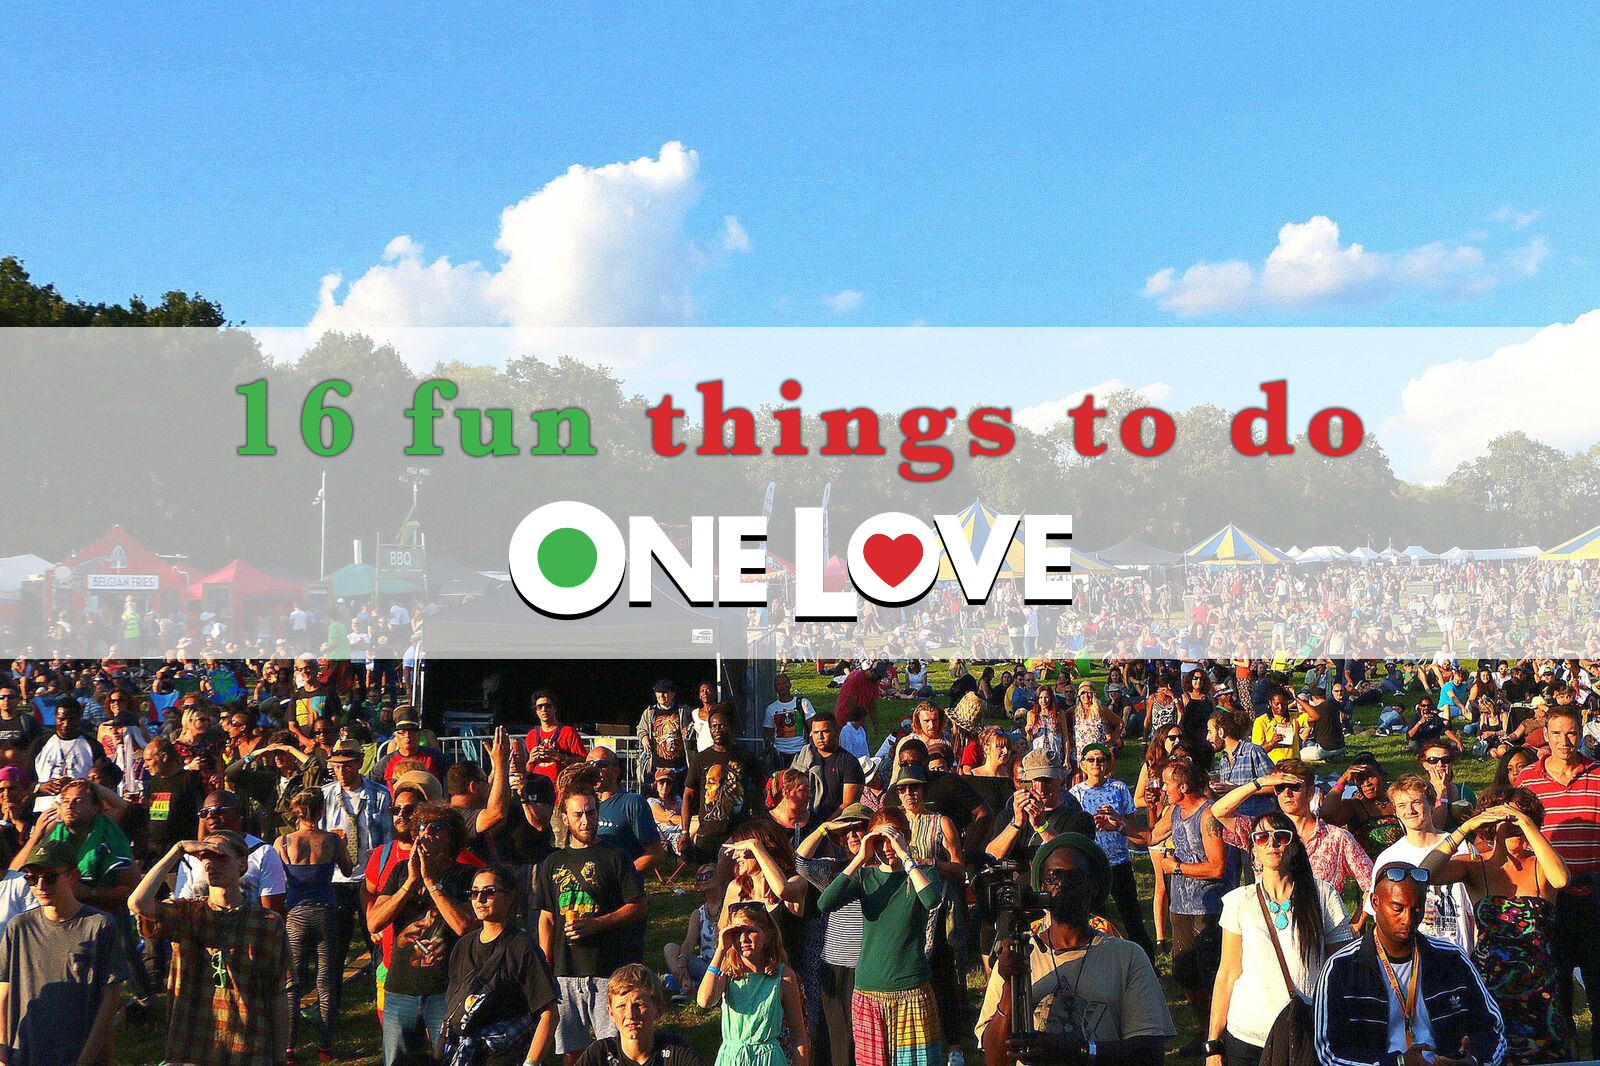 16 fun things to do at One Love